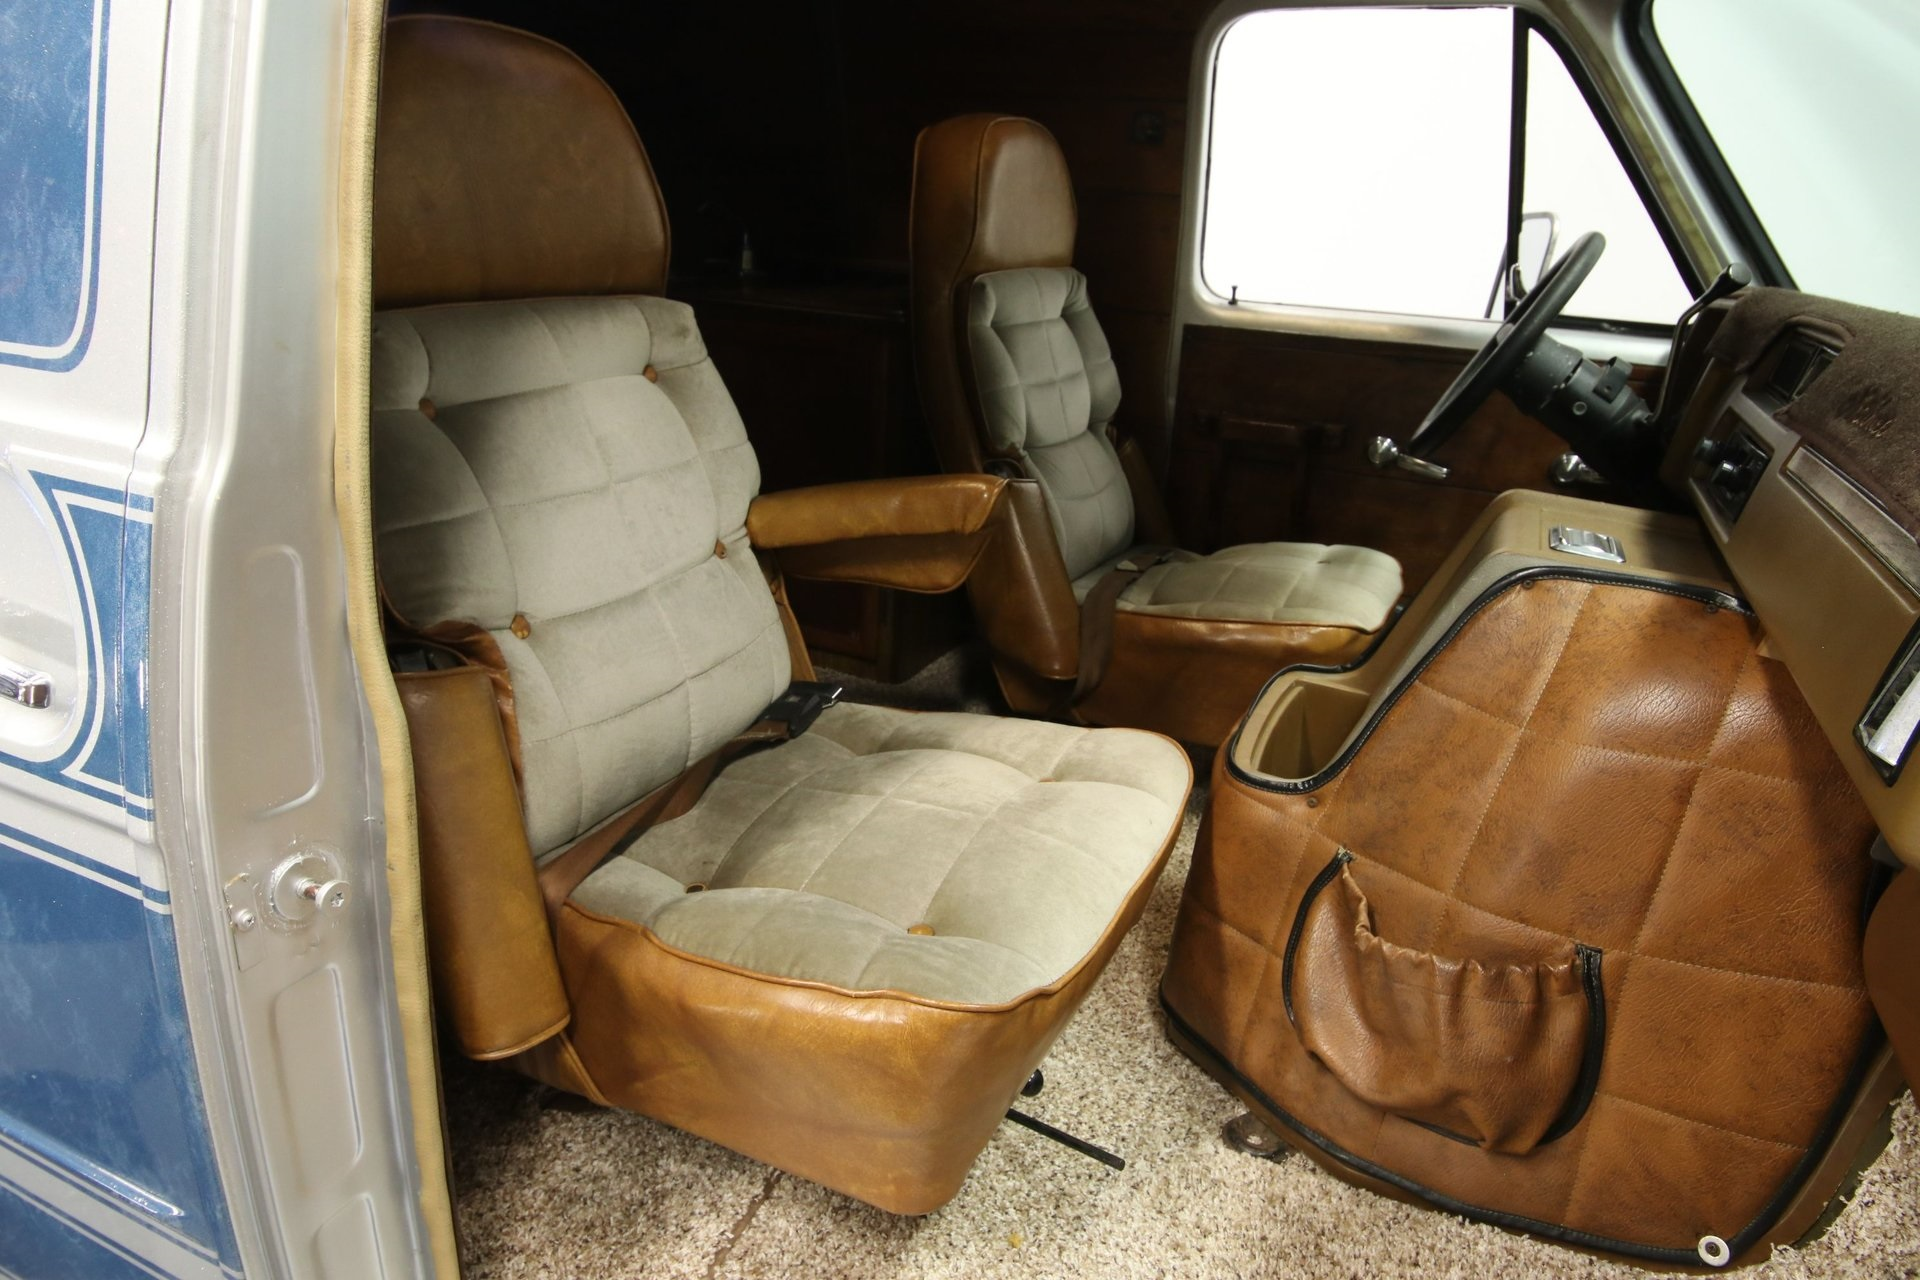 1977-chevrolet-g20-shorty-van-rddj16